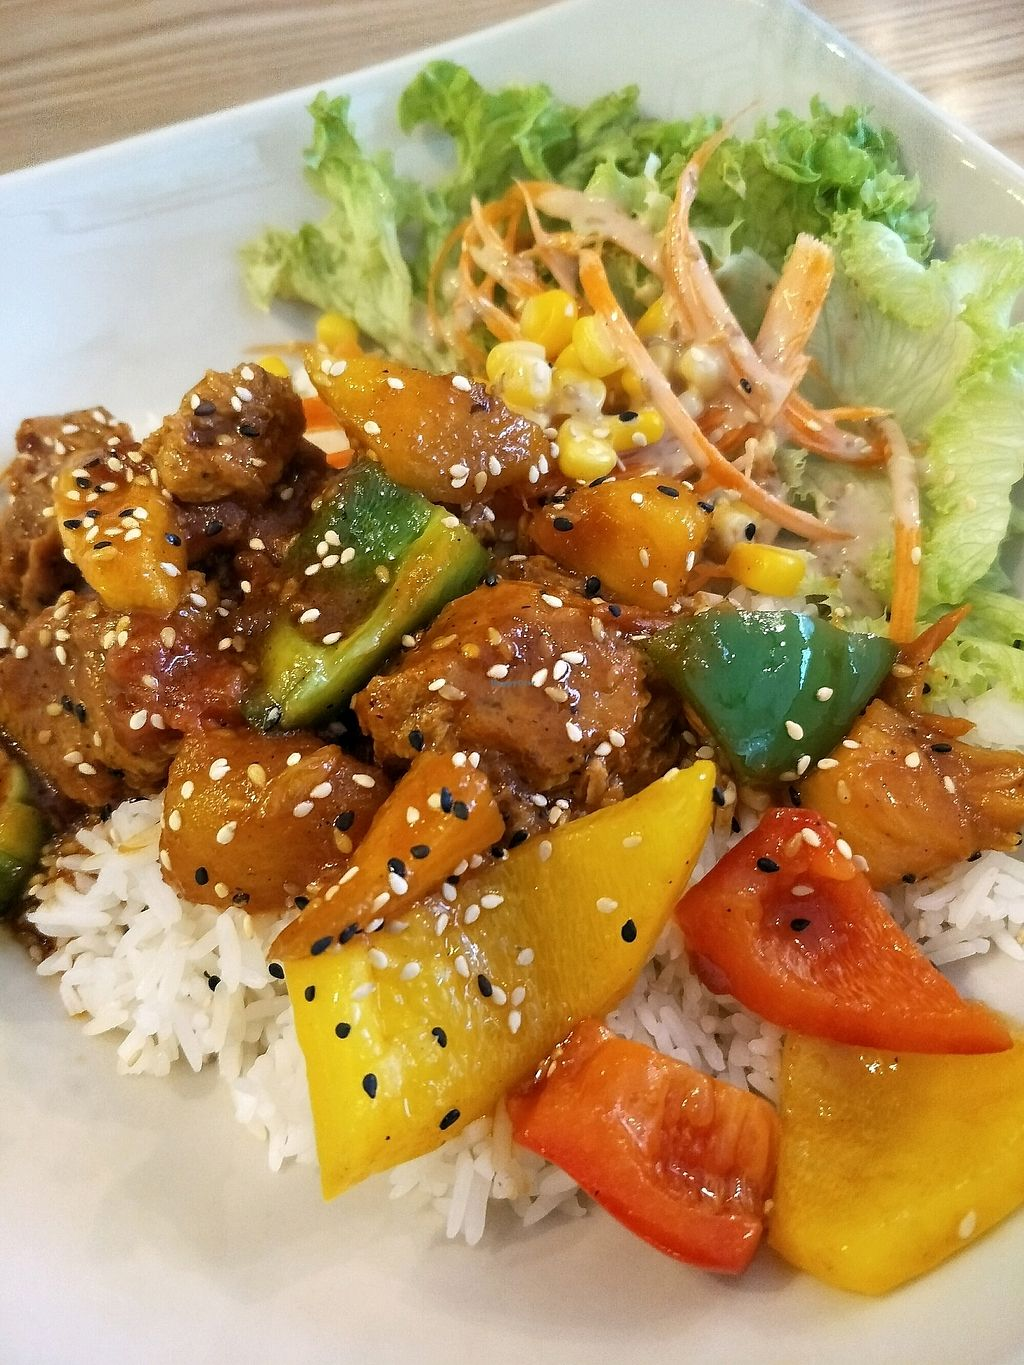 """Photo of Harmony Hut International Food  by <a href=""""/members/profile/MichelleNg"""">MichelleNg</a> <br/>sweet n sour rice <br/> March 5, 2018  - <a href='/contact/abuse/image/90230/367088'>Report</a>"""